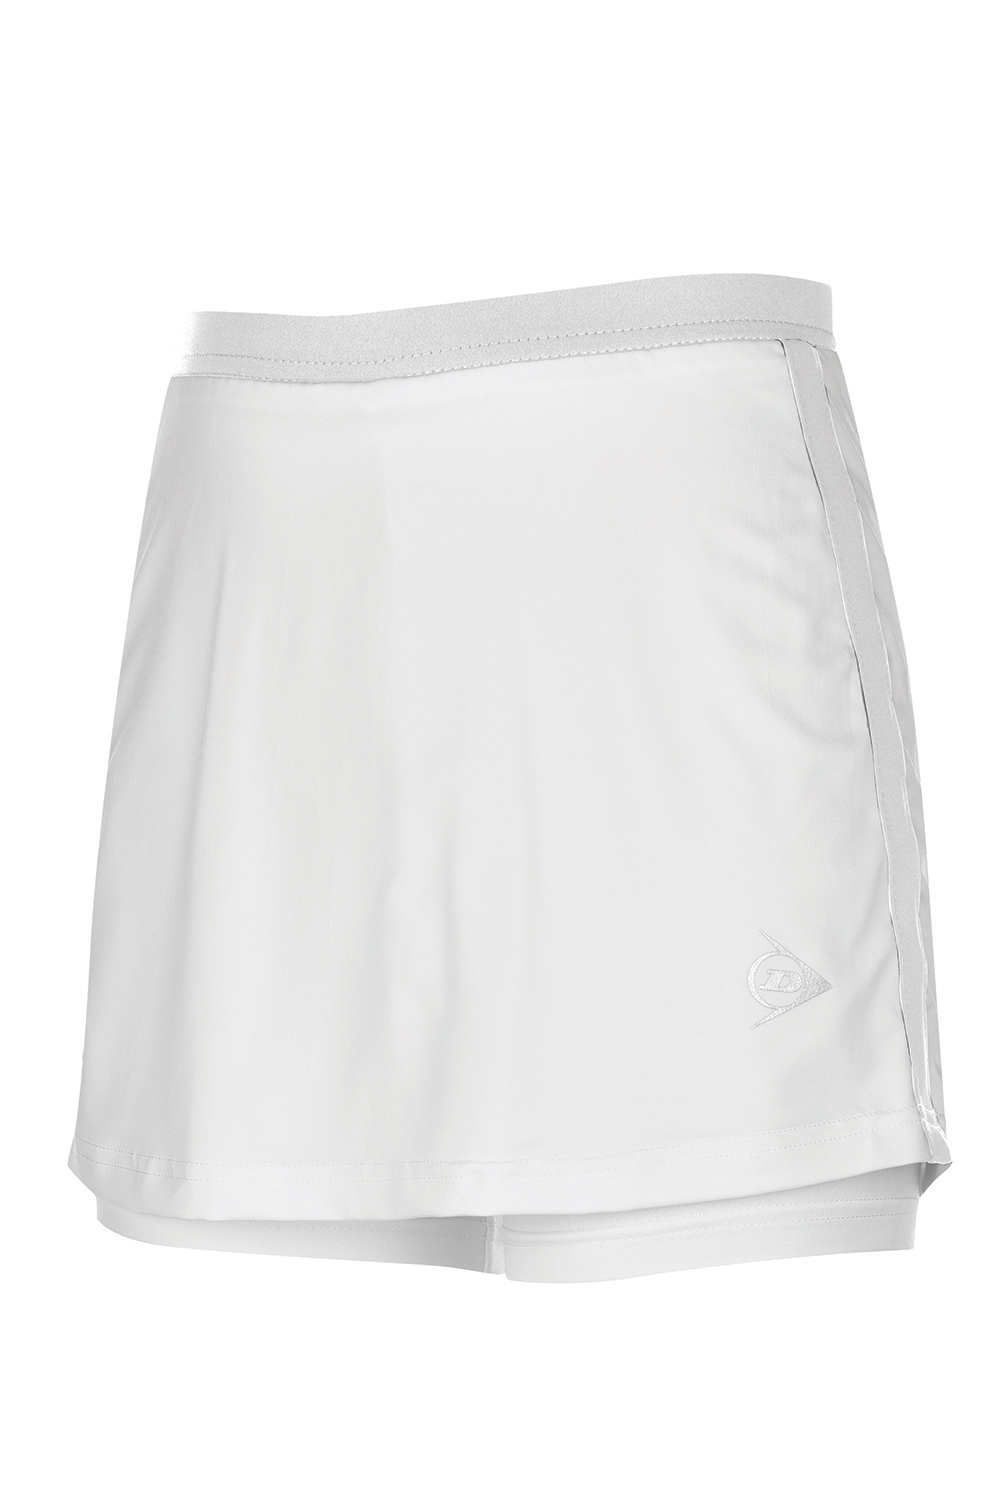 Image of   Dunlop AC Club Broekrok Dames - Wit - L